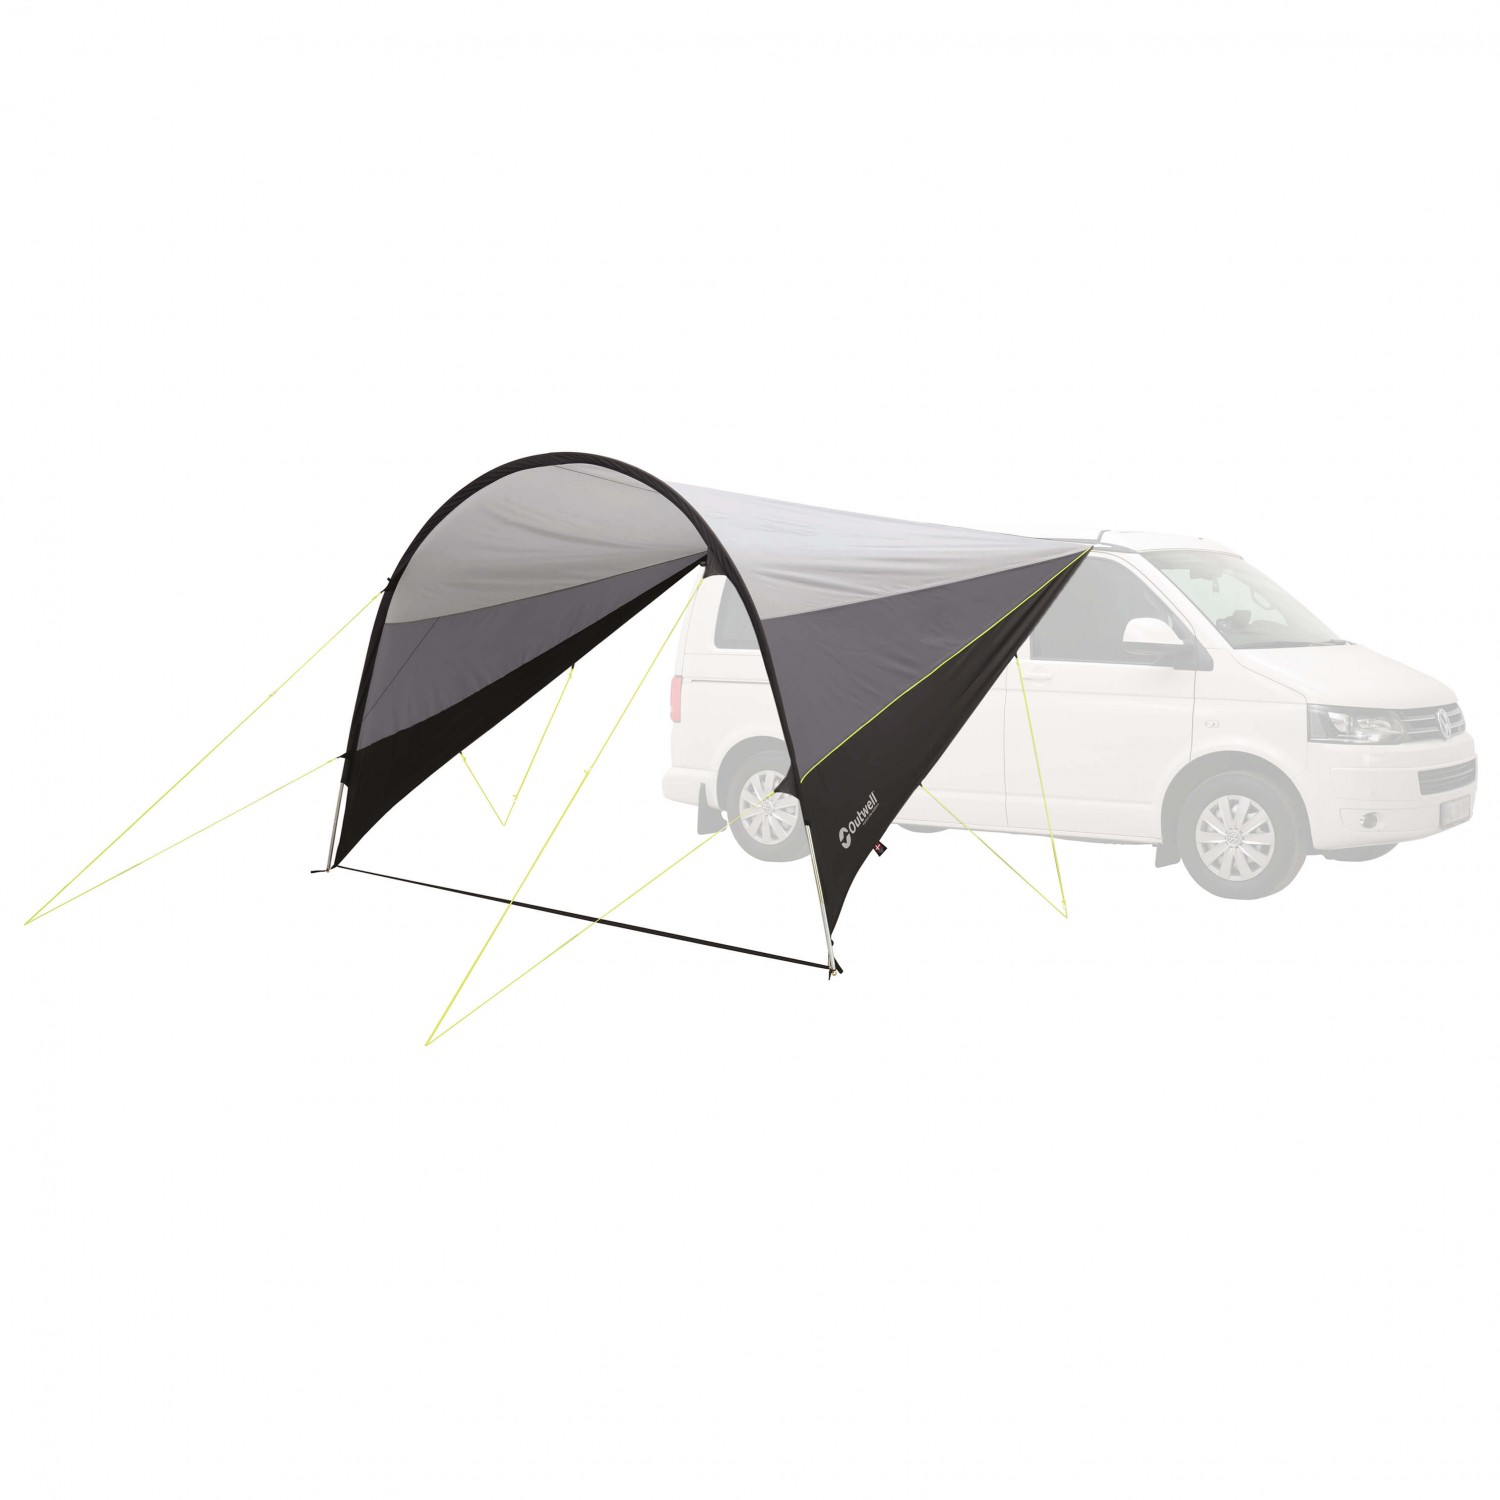 Outwell - Touring Canopy M - Motorhome awning ...  sc 1 st  Bergfreunde.eu & Outwell Touring Canopy M - Motorhome awning | Free EU Delivery ...